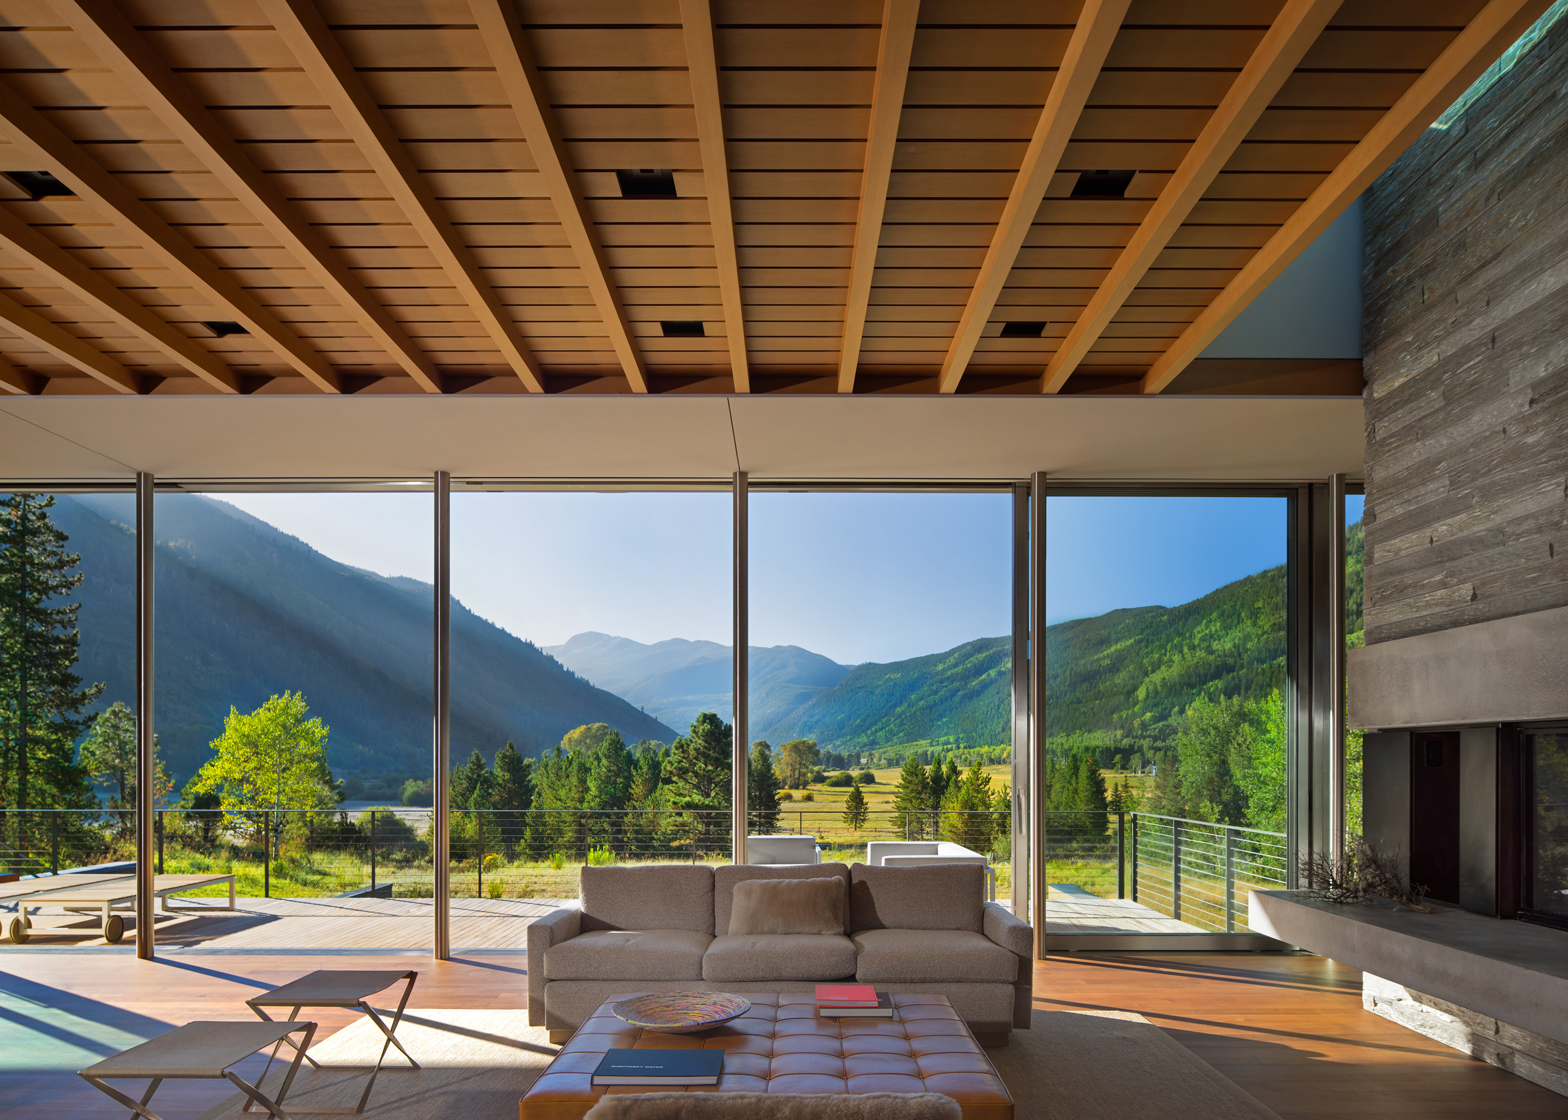 Independence Pass Residence; Aspen, Colorado by Bohlin Cywinski Jackson. Photograph by Nic Lehoux